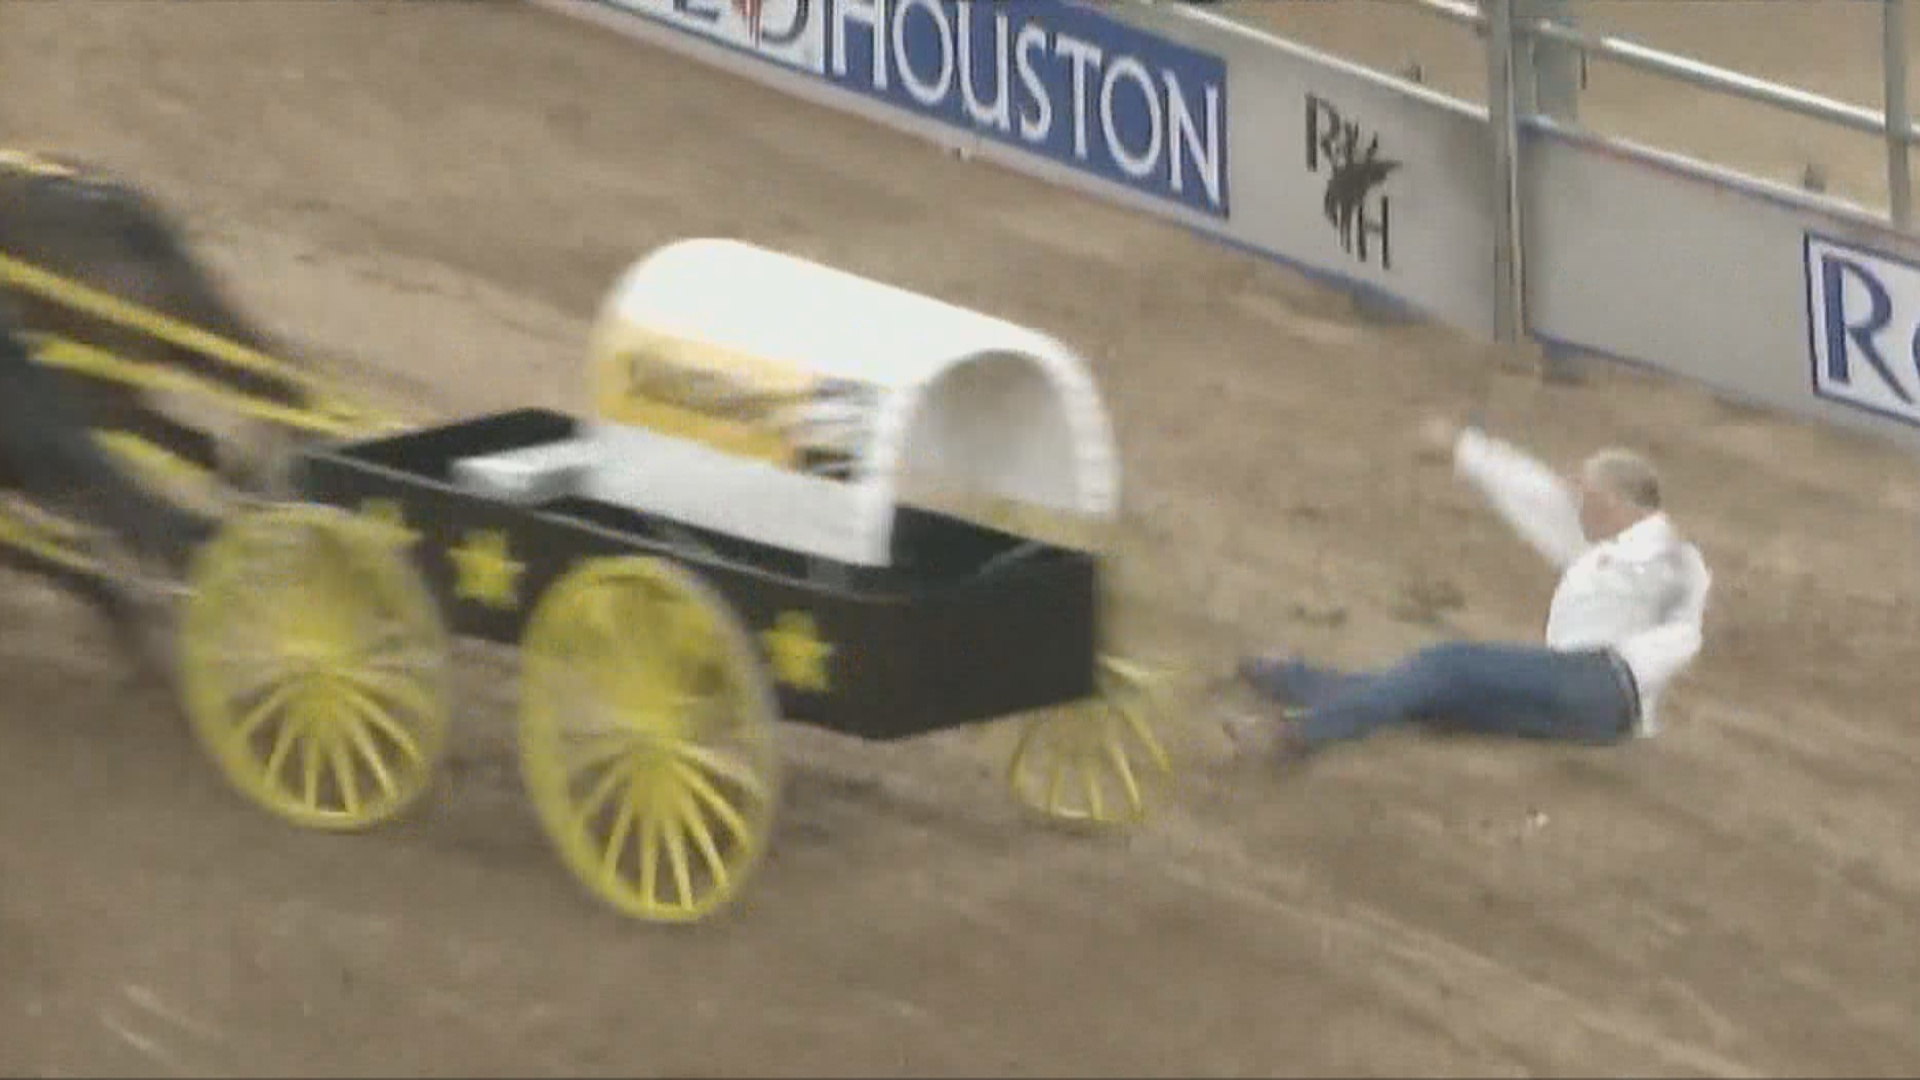 Chuck-wagon driver and horse injured in terrifying fall at Houston Rodeo